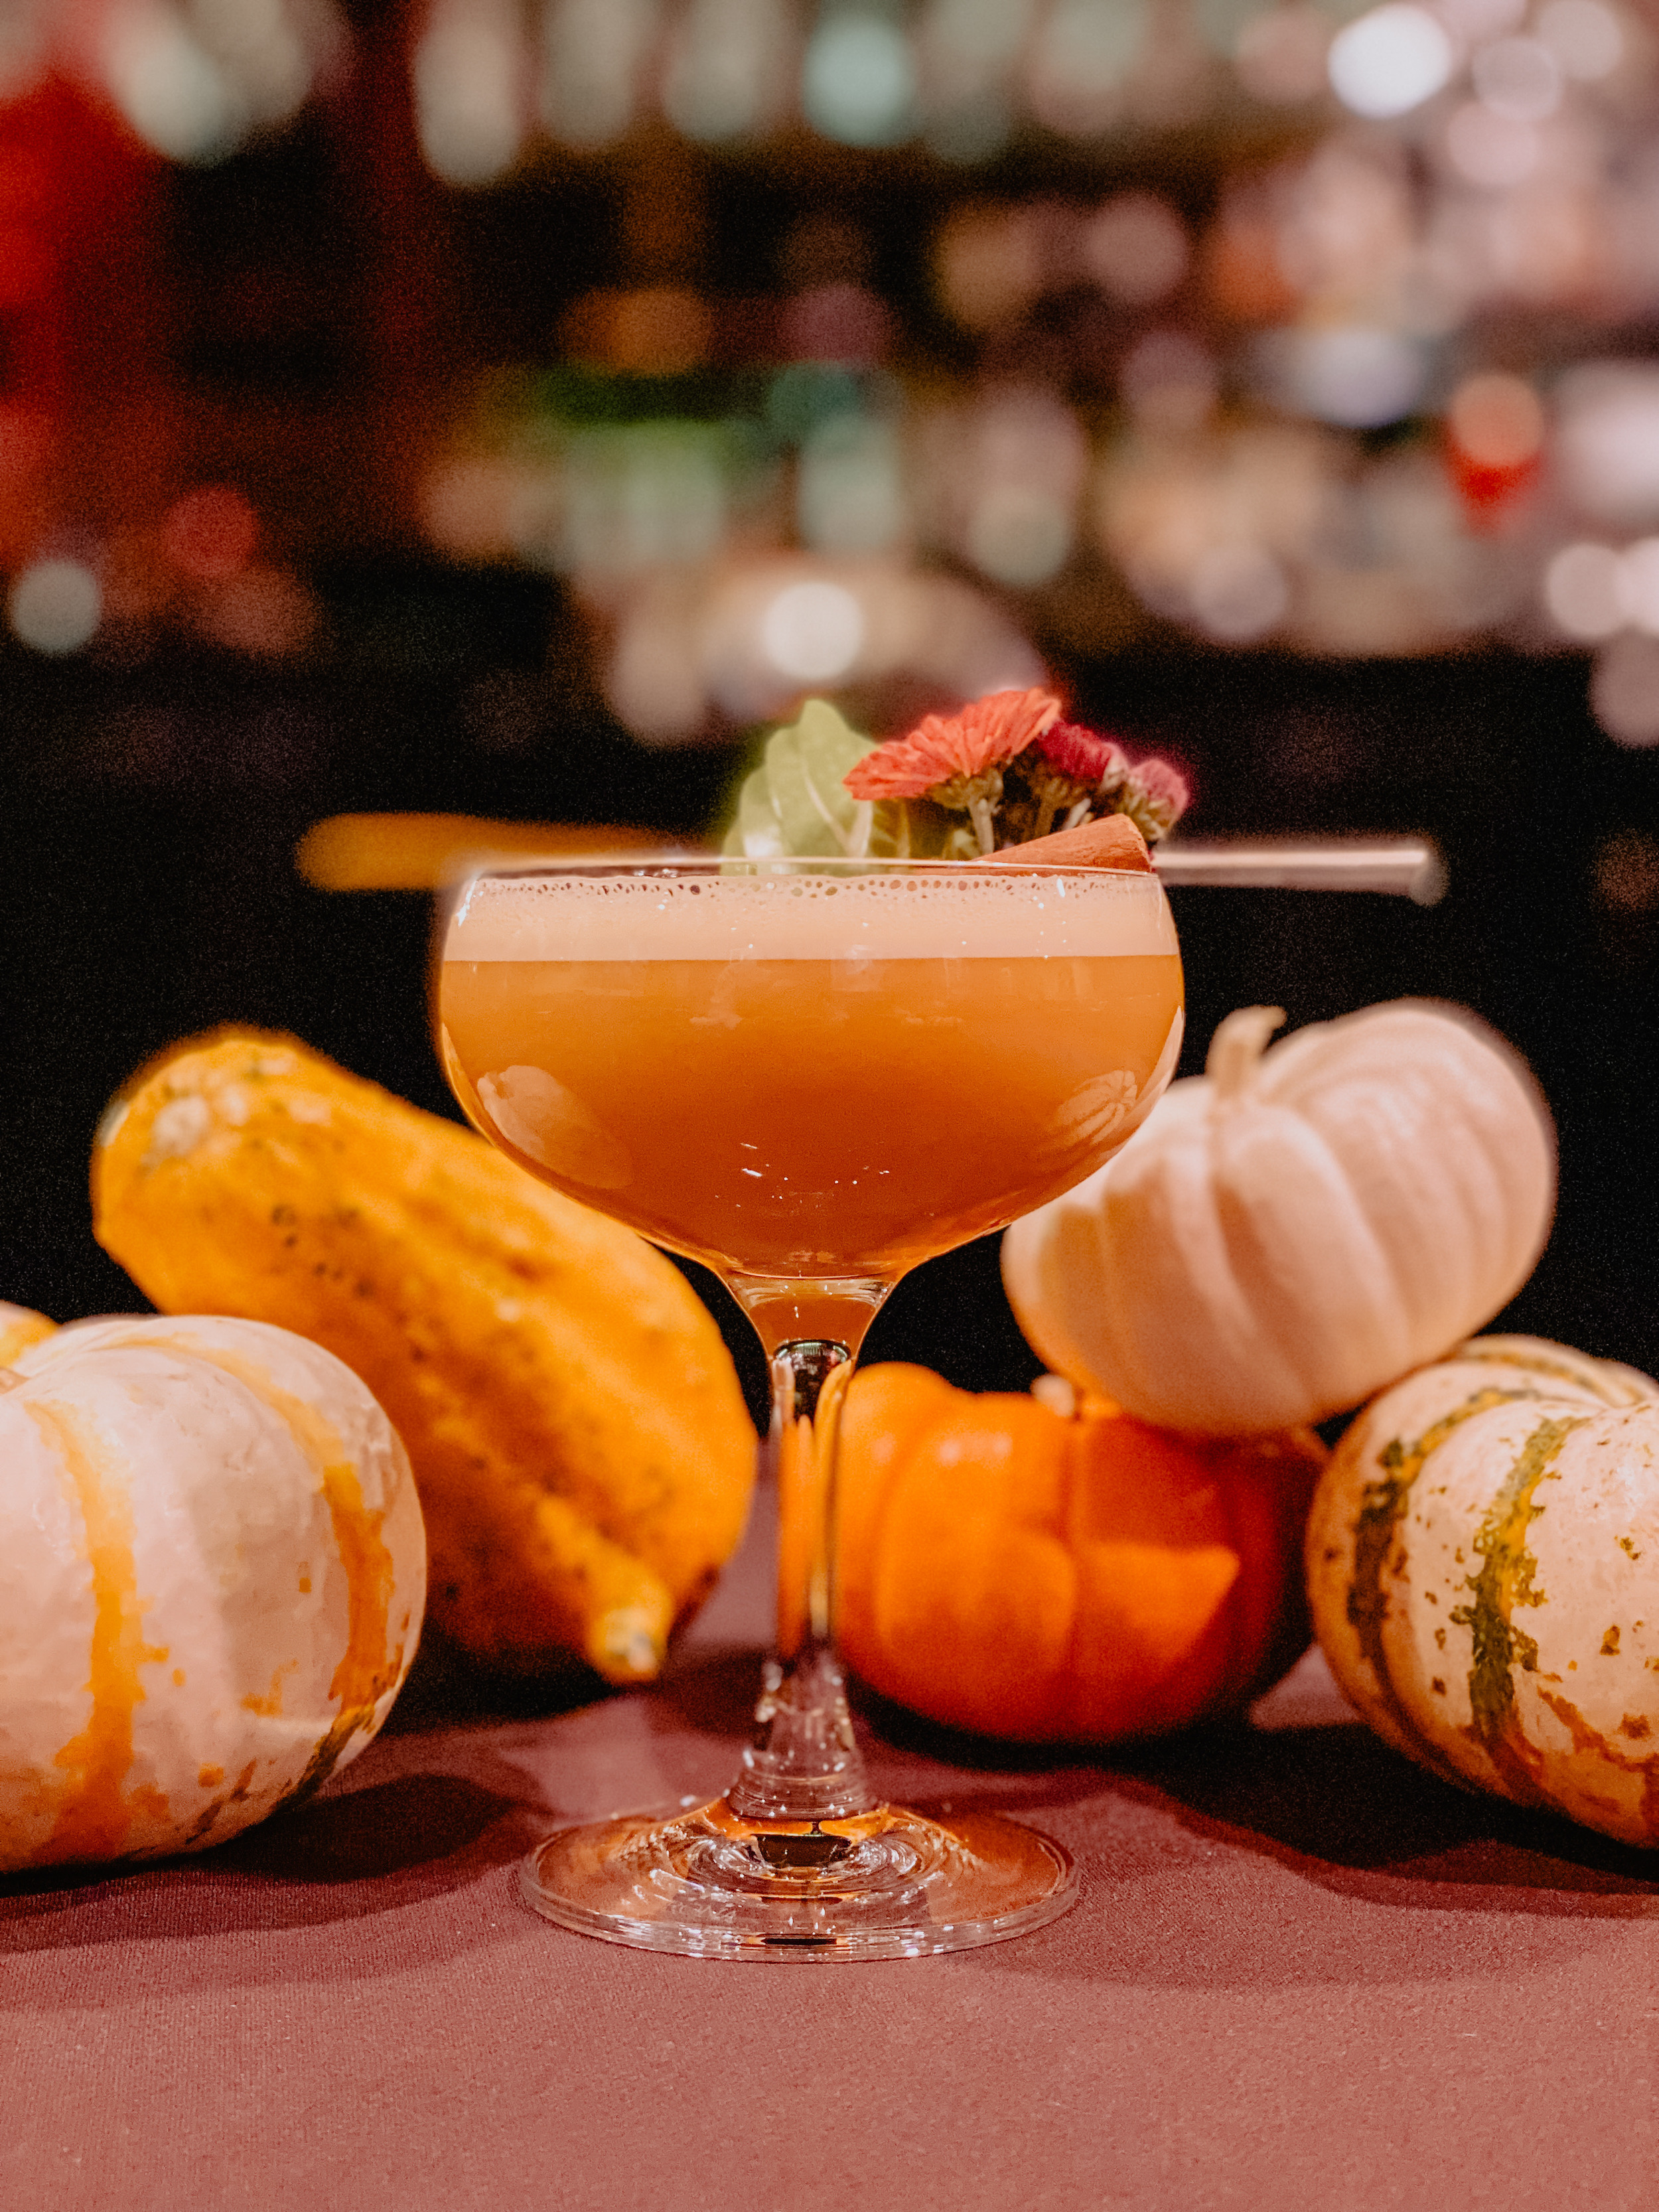 An orange cocktail in a coupe glass with decorative squash around it.